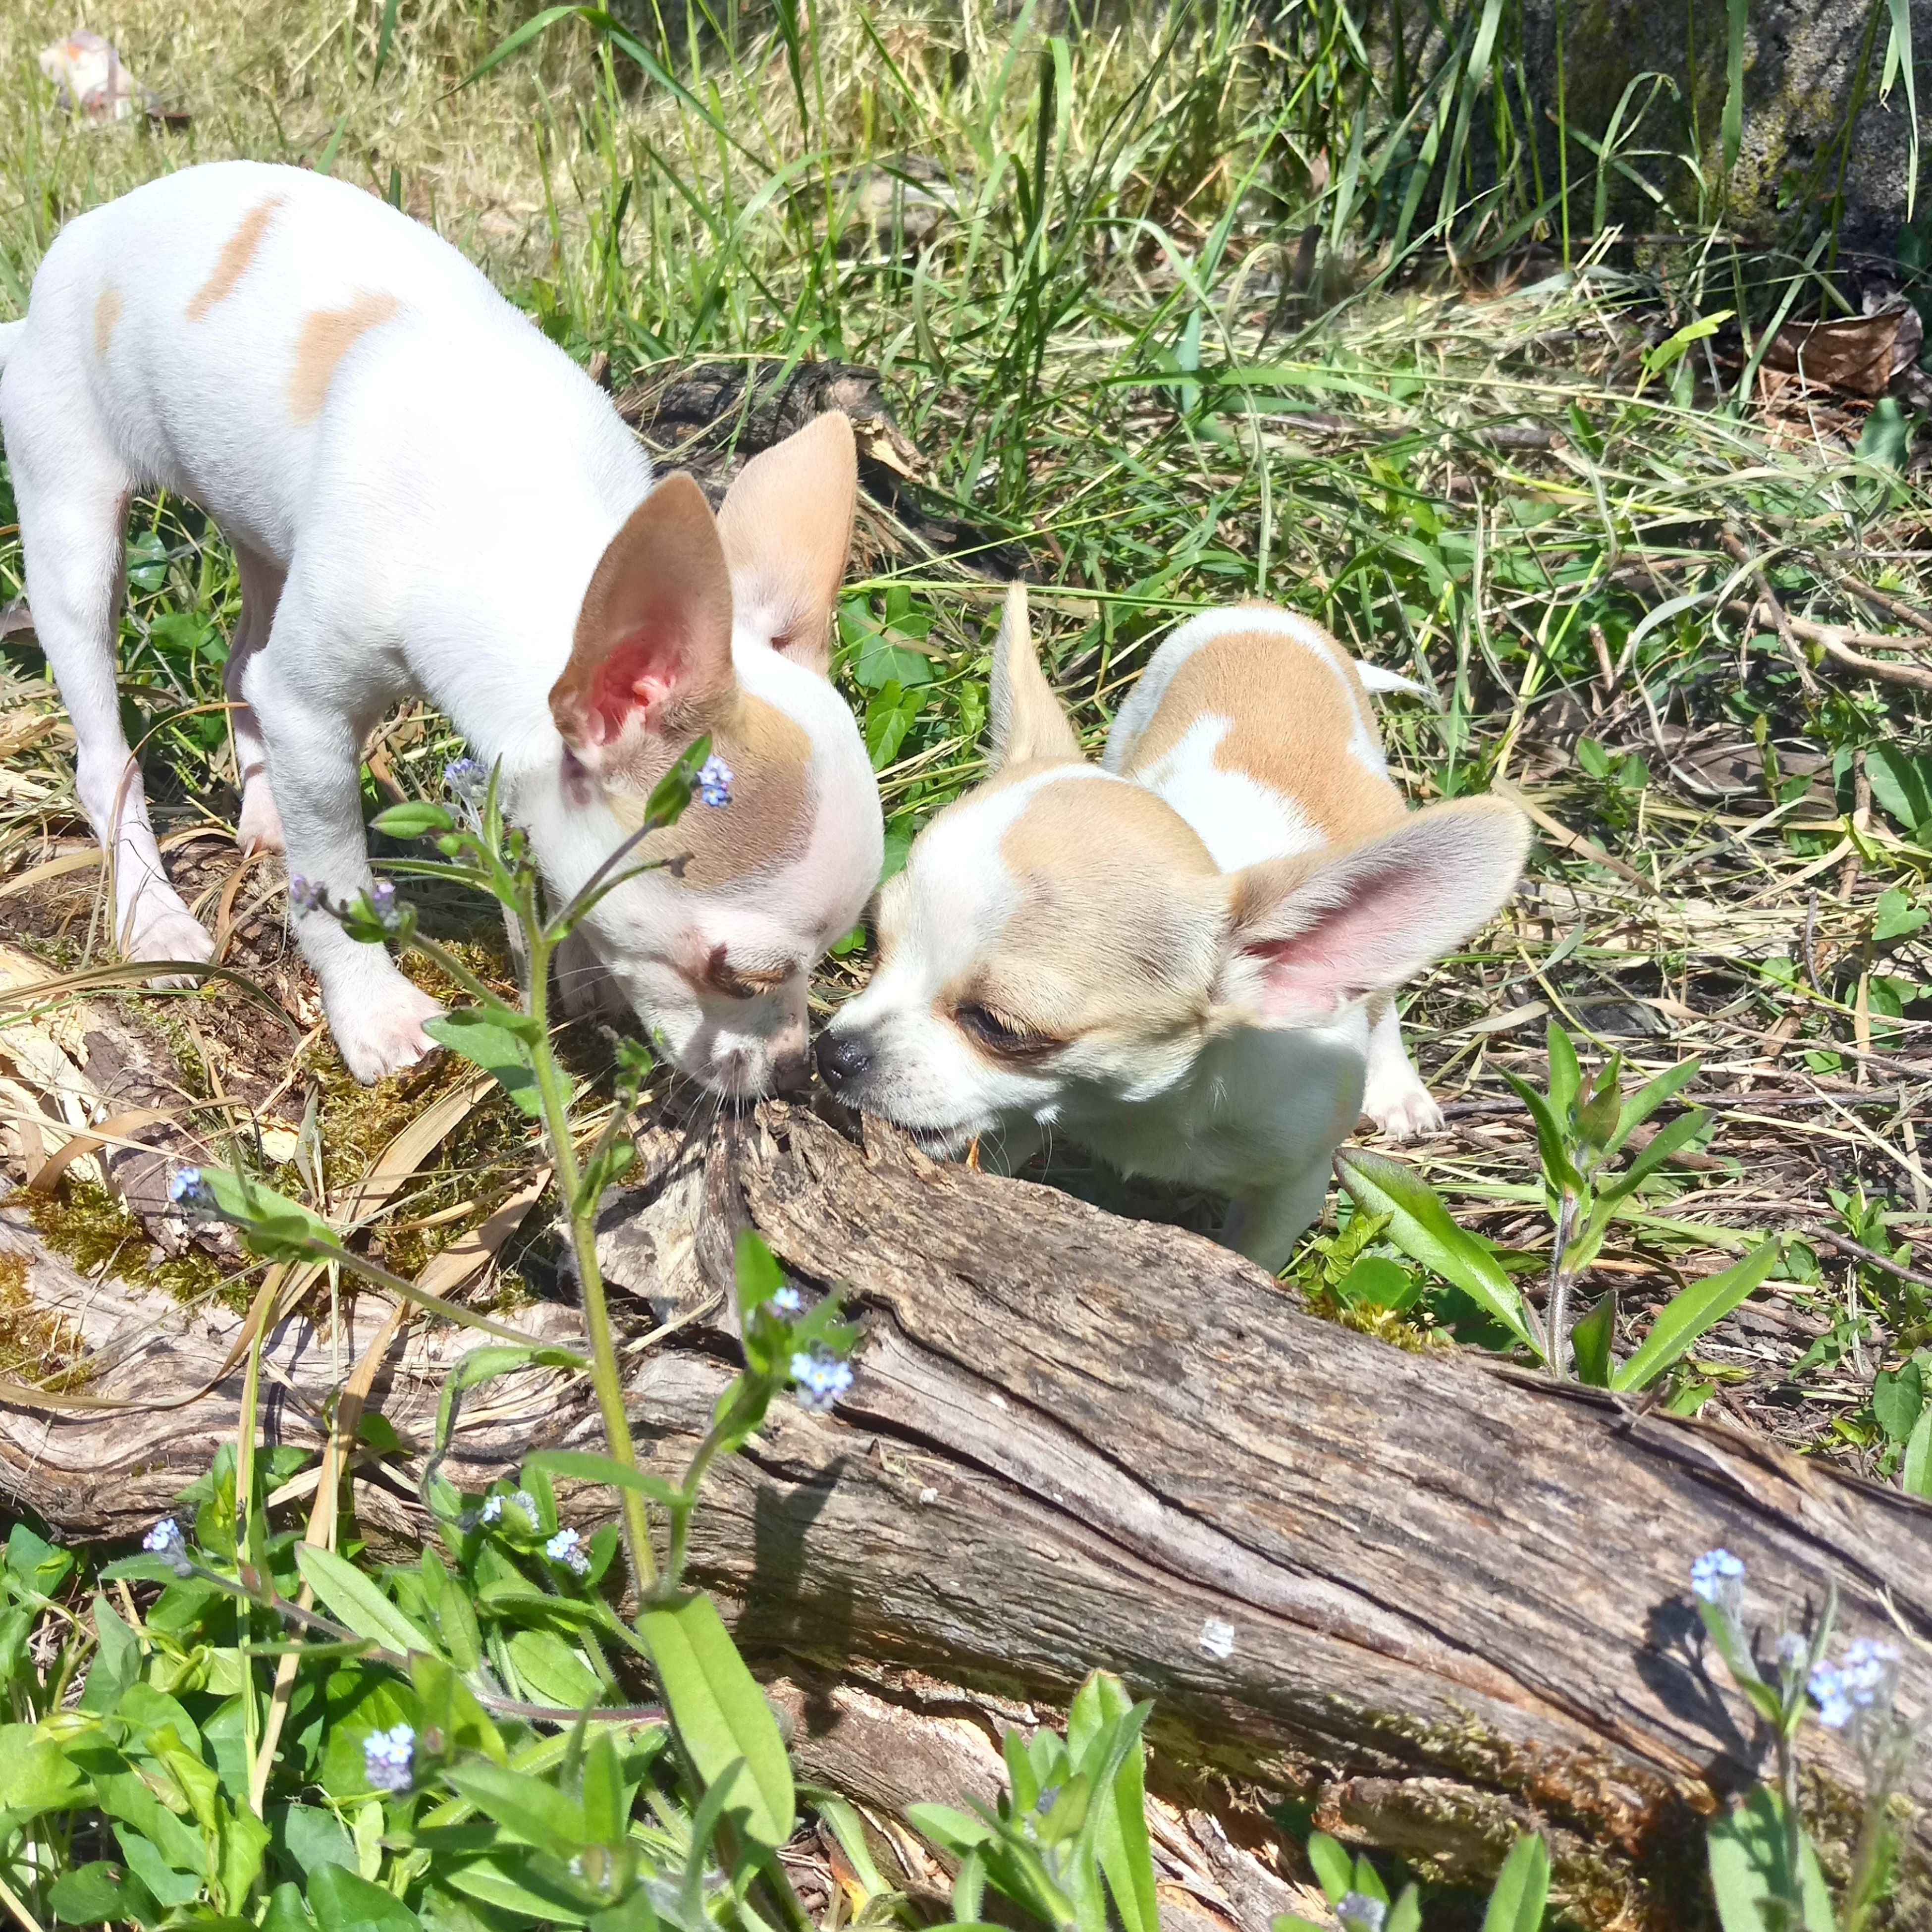 animal themes, domestic animals, pets, high angle view, mammal, dog, grass, day, young animal, no people, togetherness, outdoors, nature